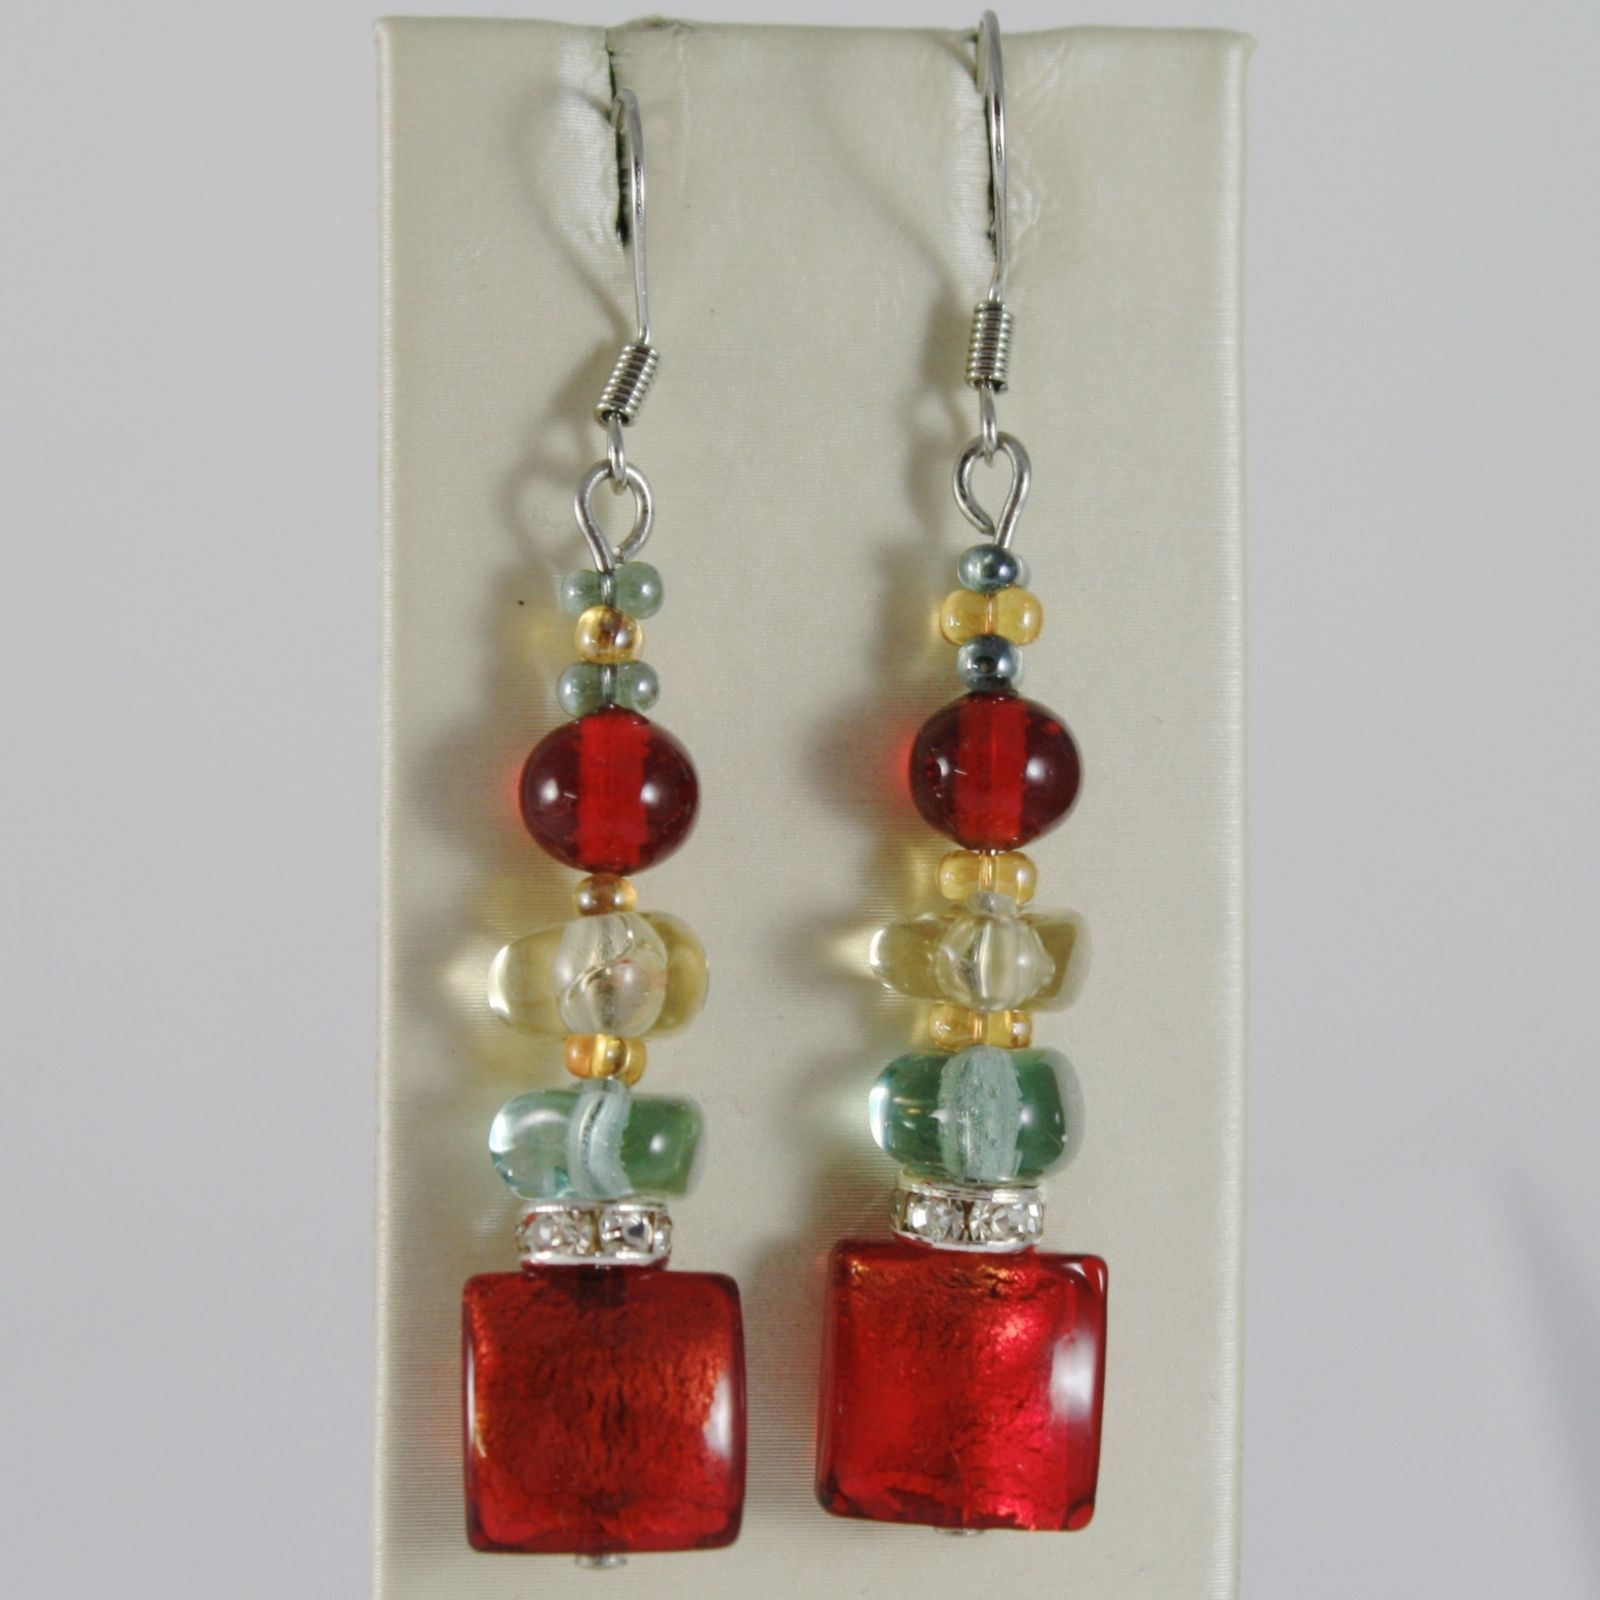 ANTICA MURRINA VENEZIA PENDANT HOOK EARRINGS, RED, YELLOW & BLUE